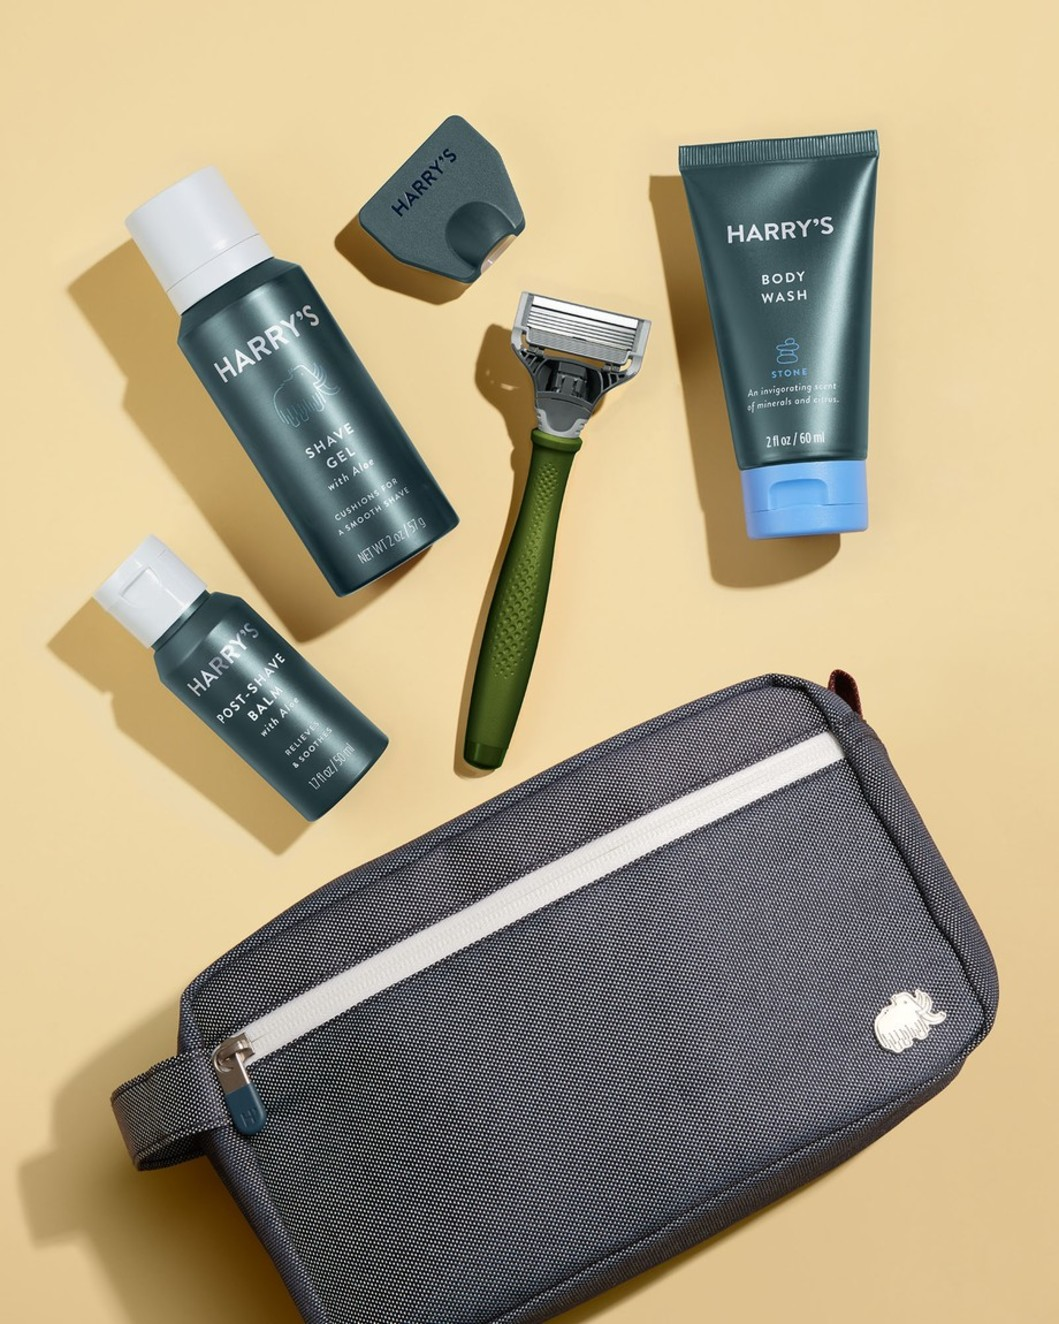 Deluxe Travel Kit - Olive Handle, Stone Body Wash